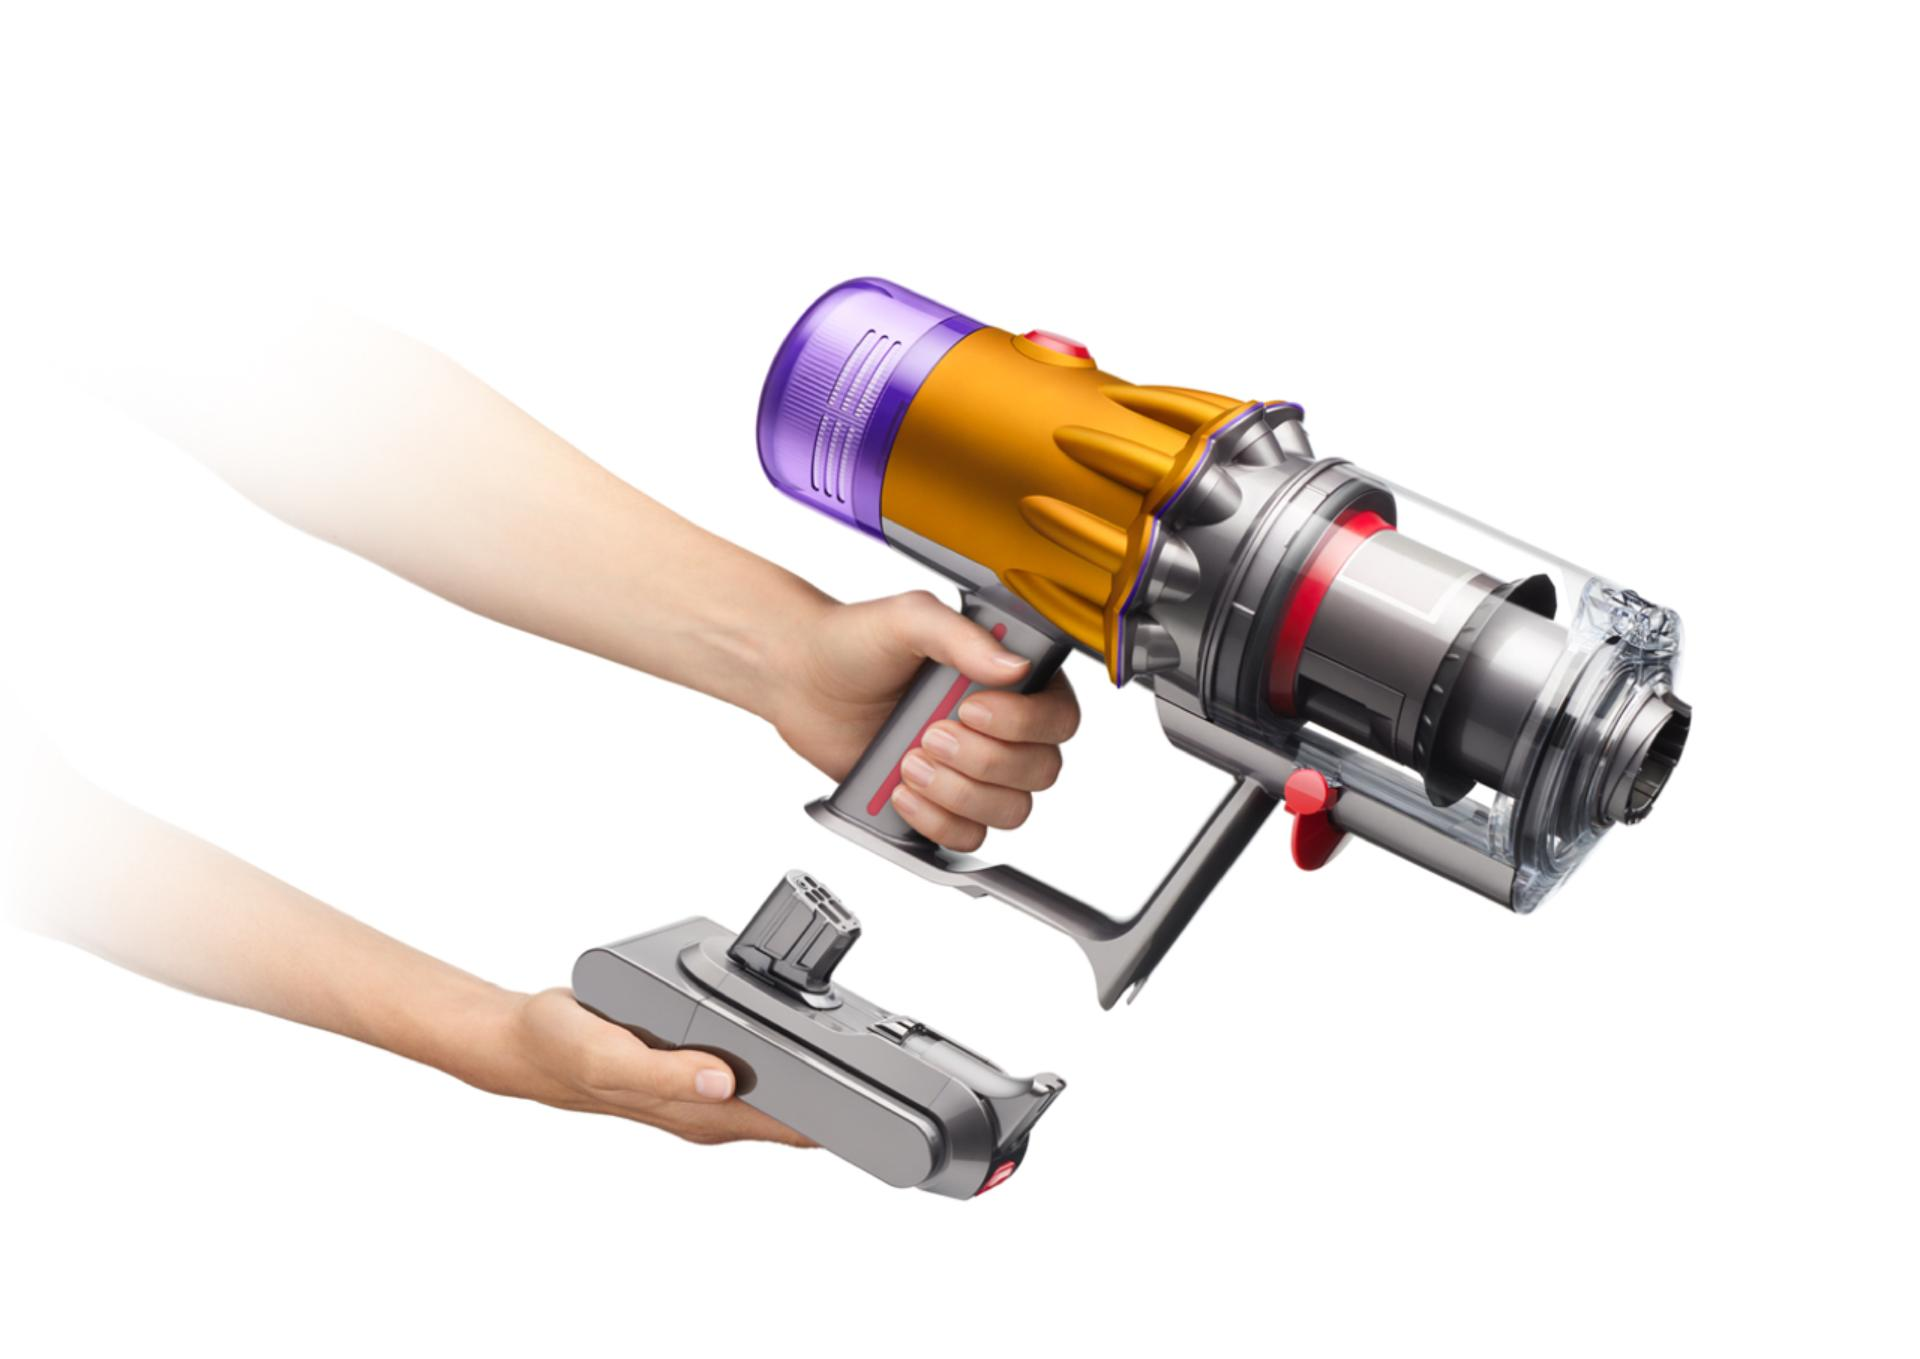 Battery being placed into dyson vacuum